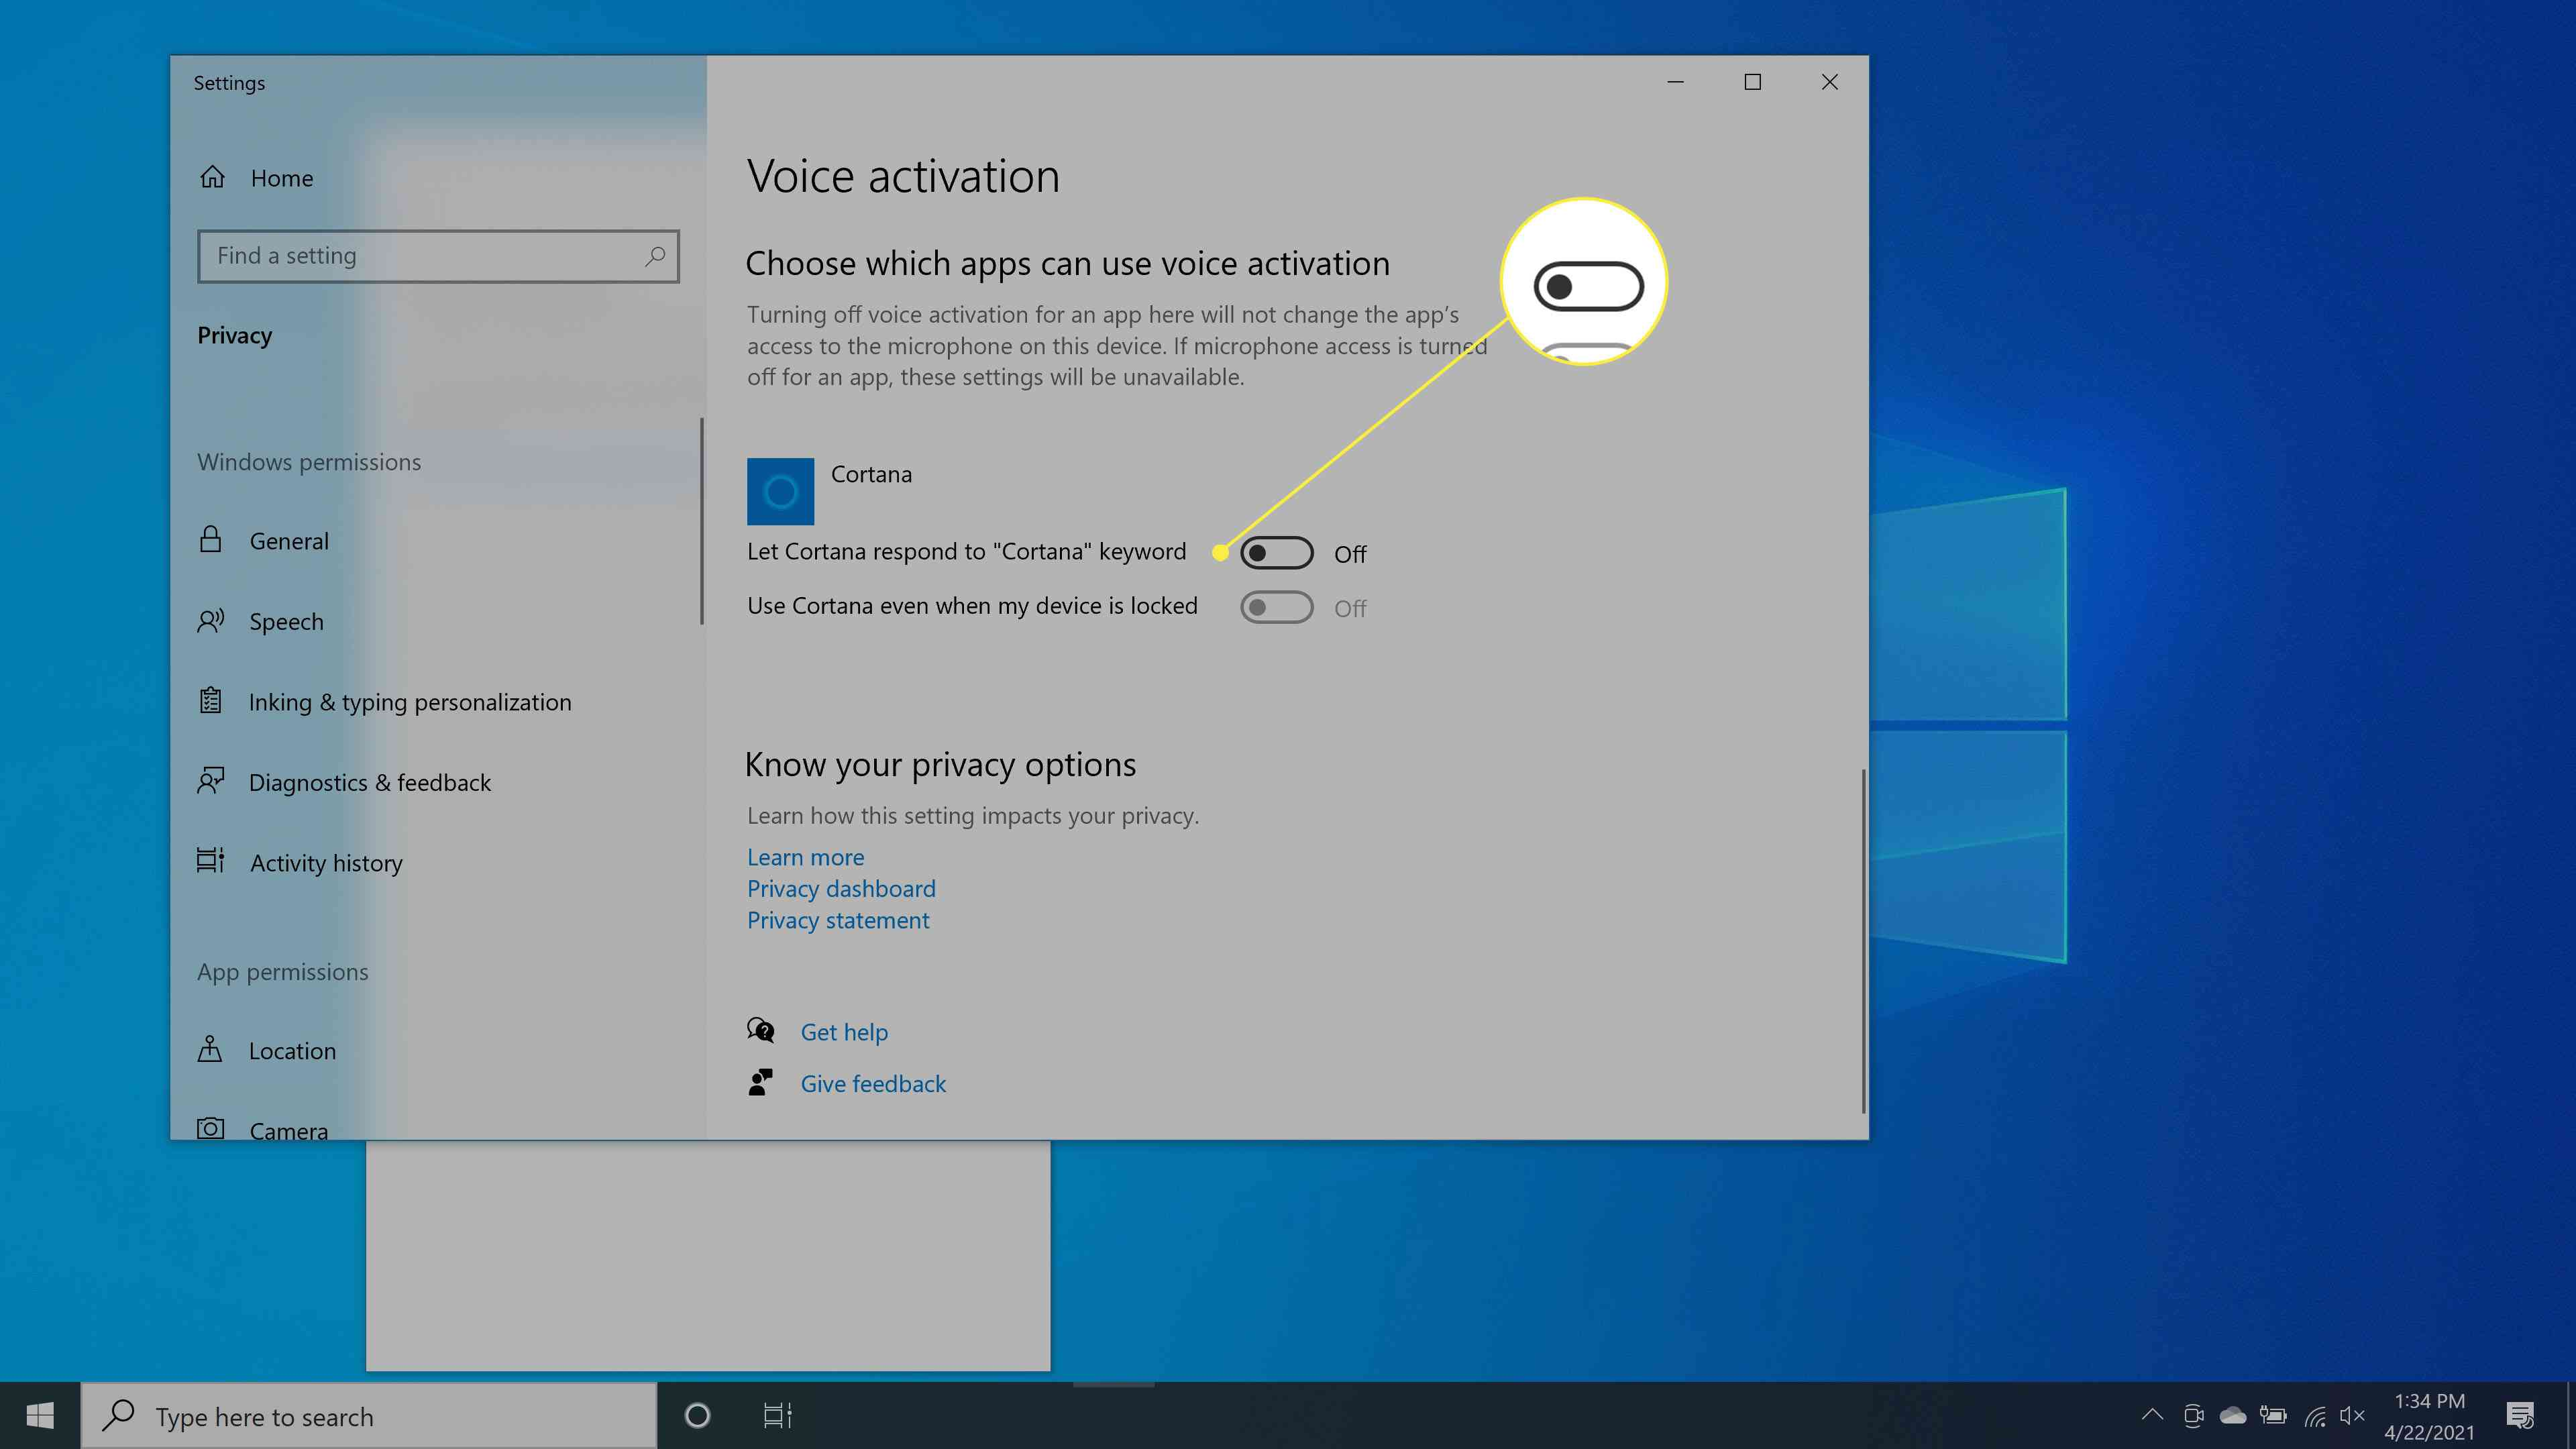 Turning off voice activation for Cortana.